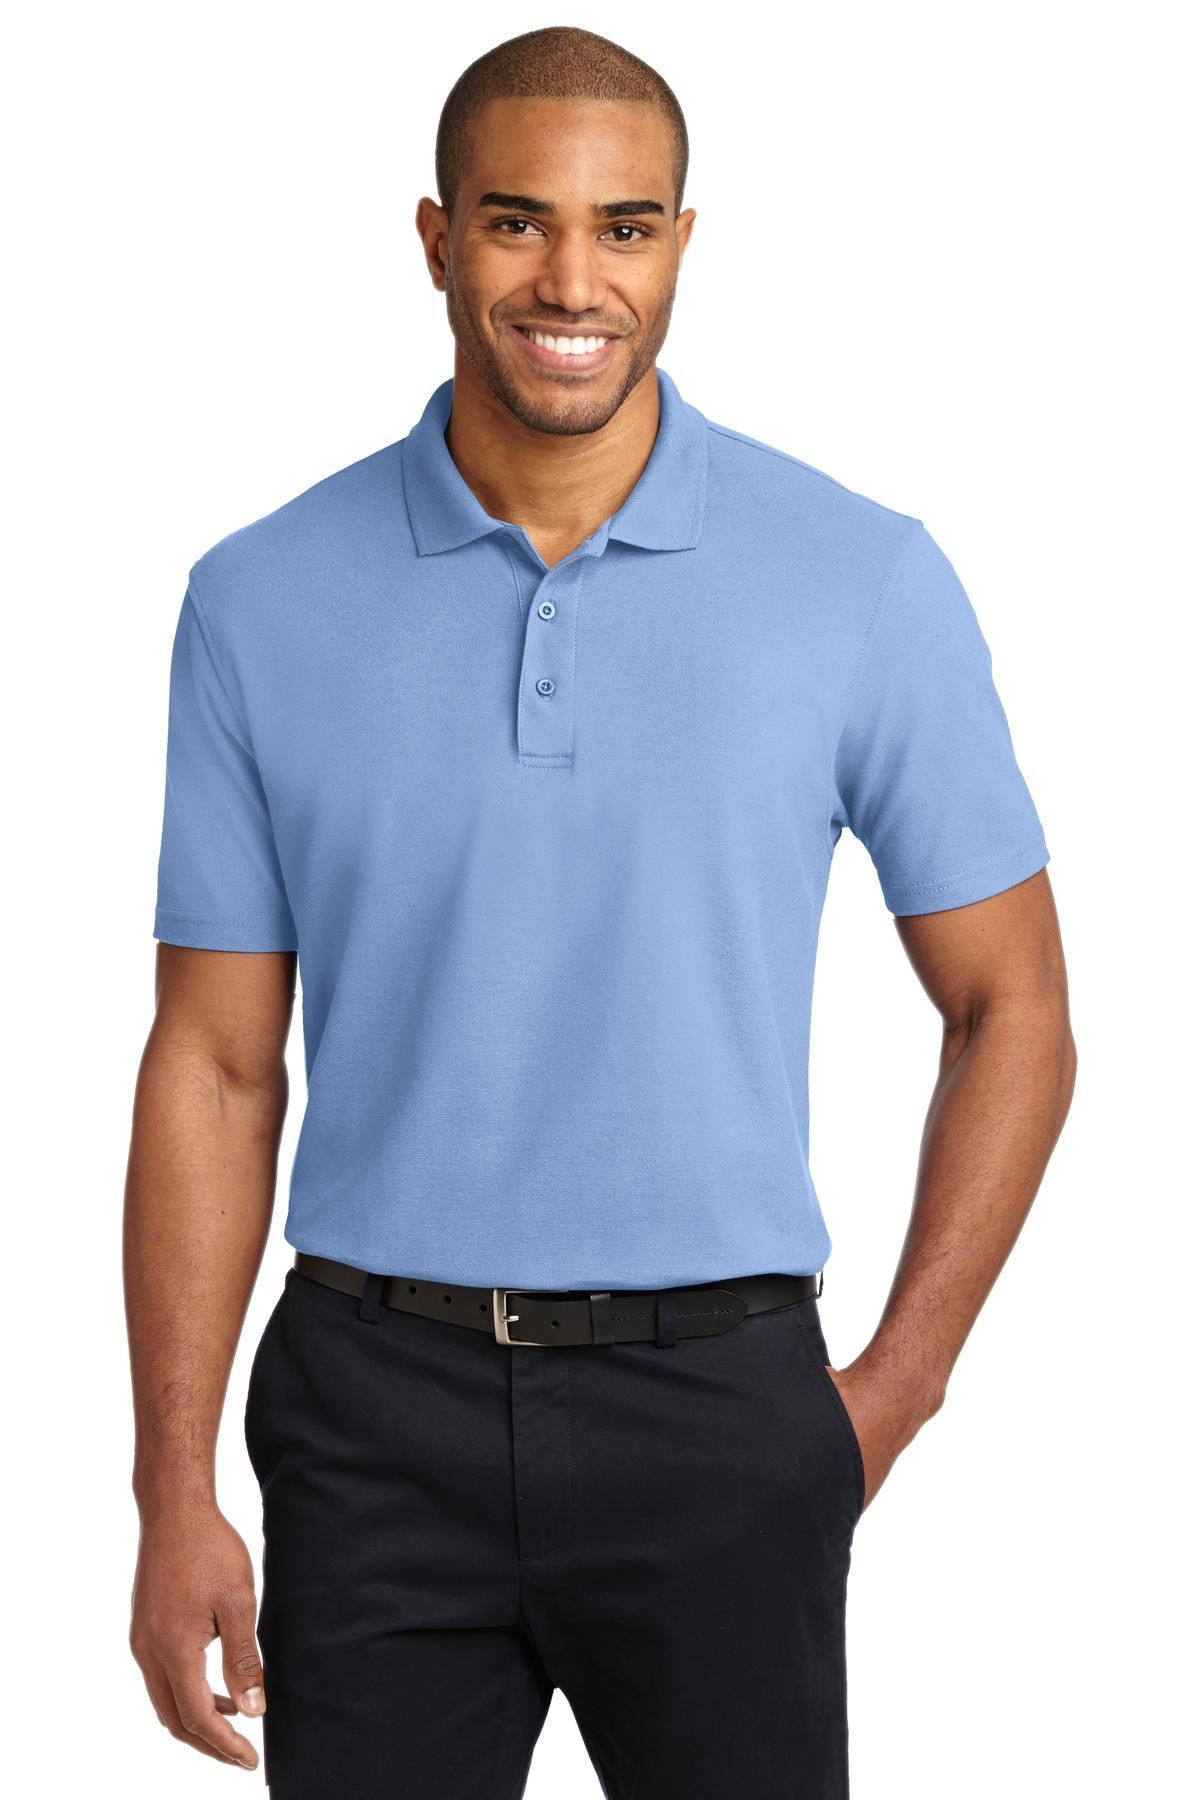 Port Authority Stain-Resistant Polo. K510 Light Blue